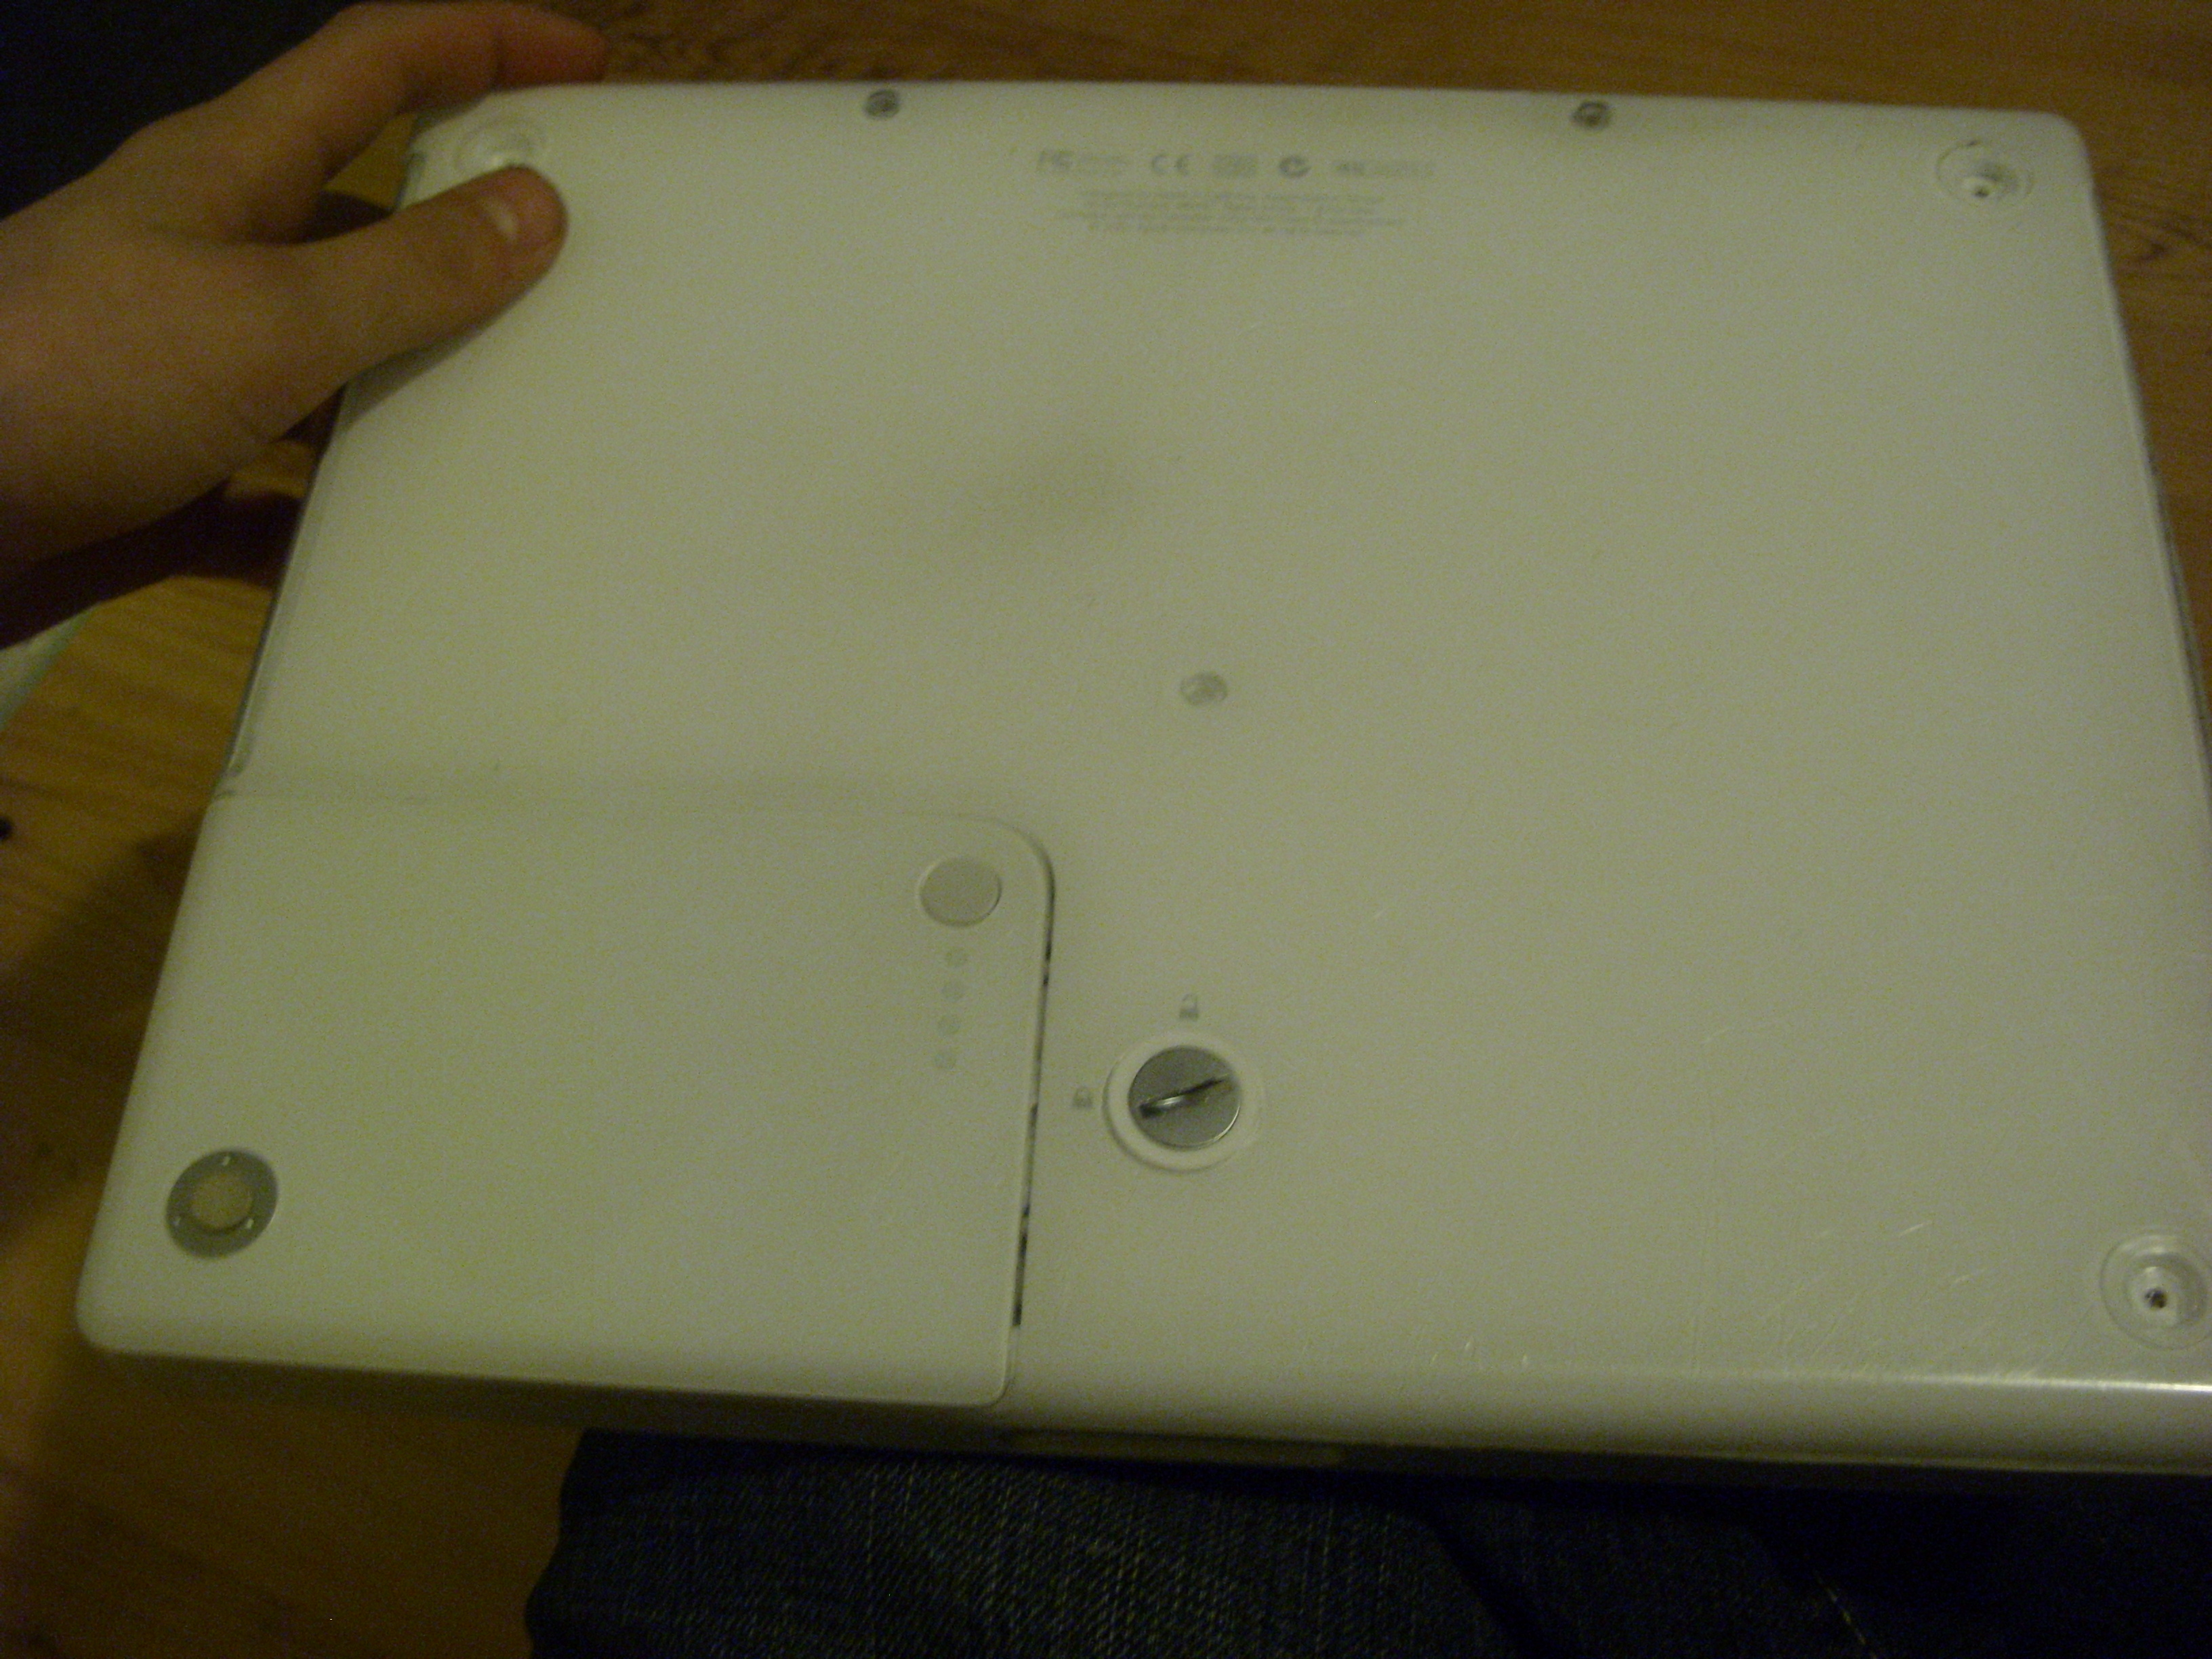 Picture of Hackintosh: Imad (ibook Computer)